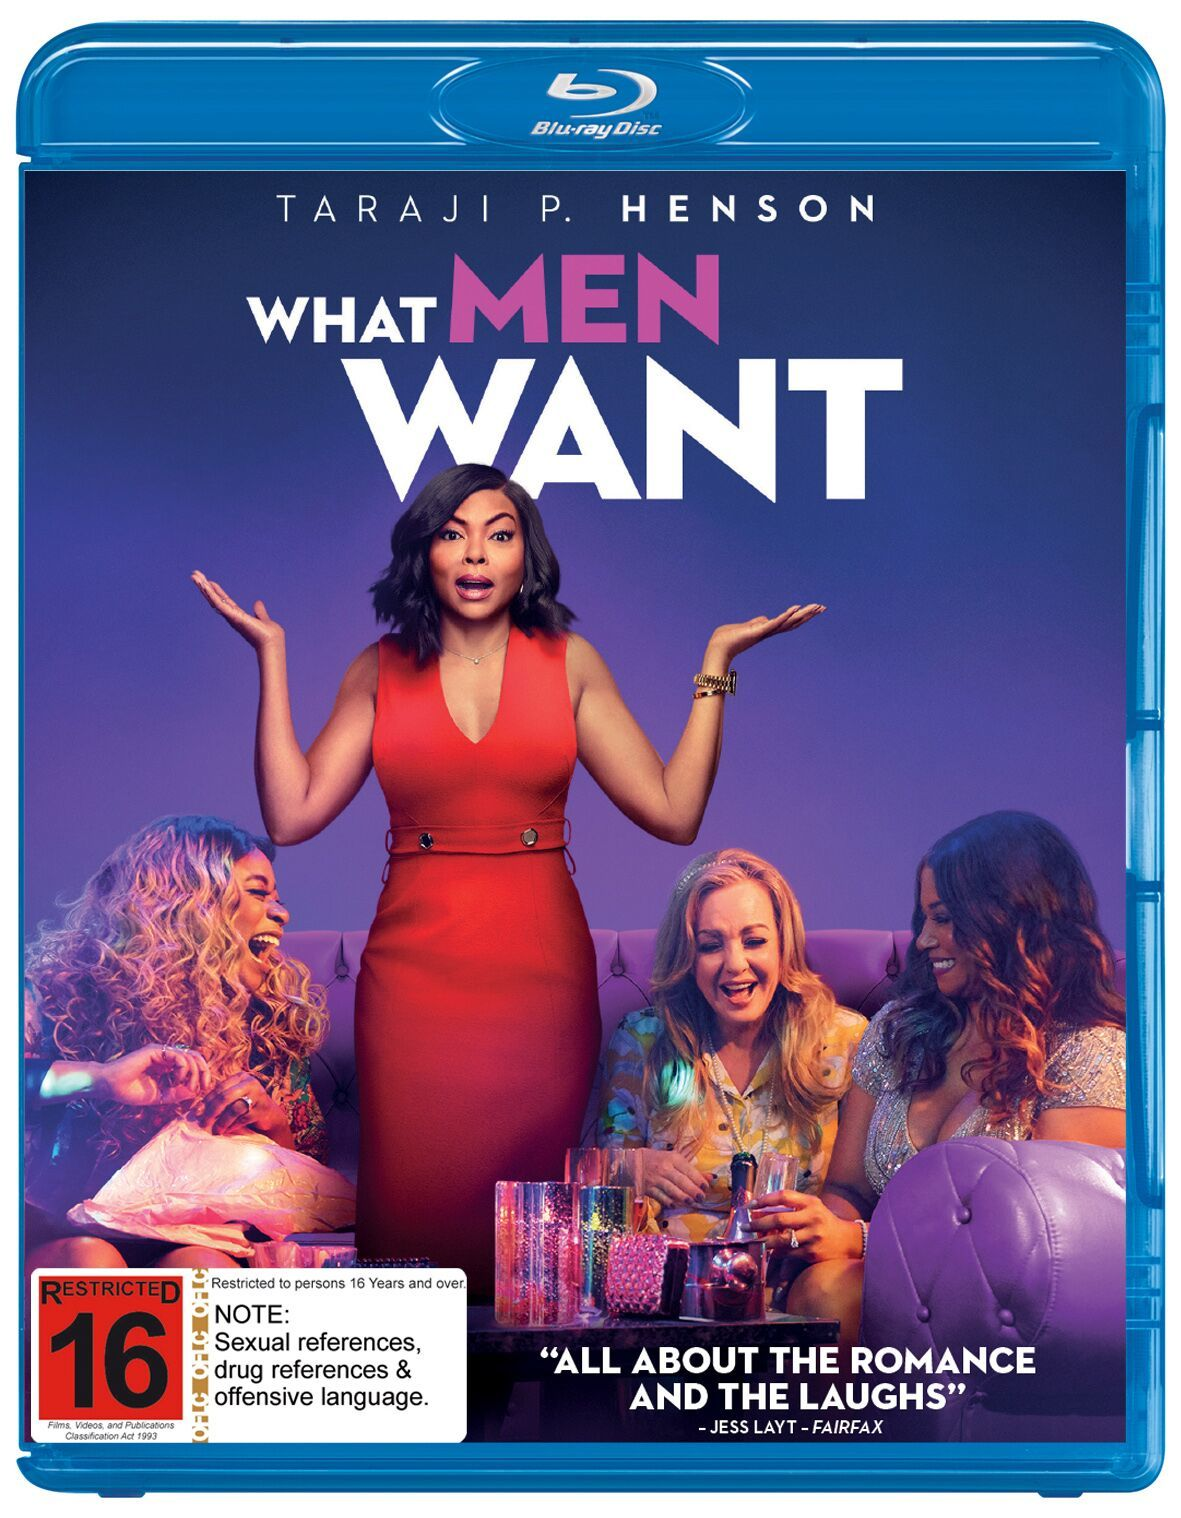 What Men Want on Blu-ray image